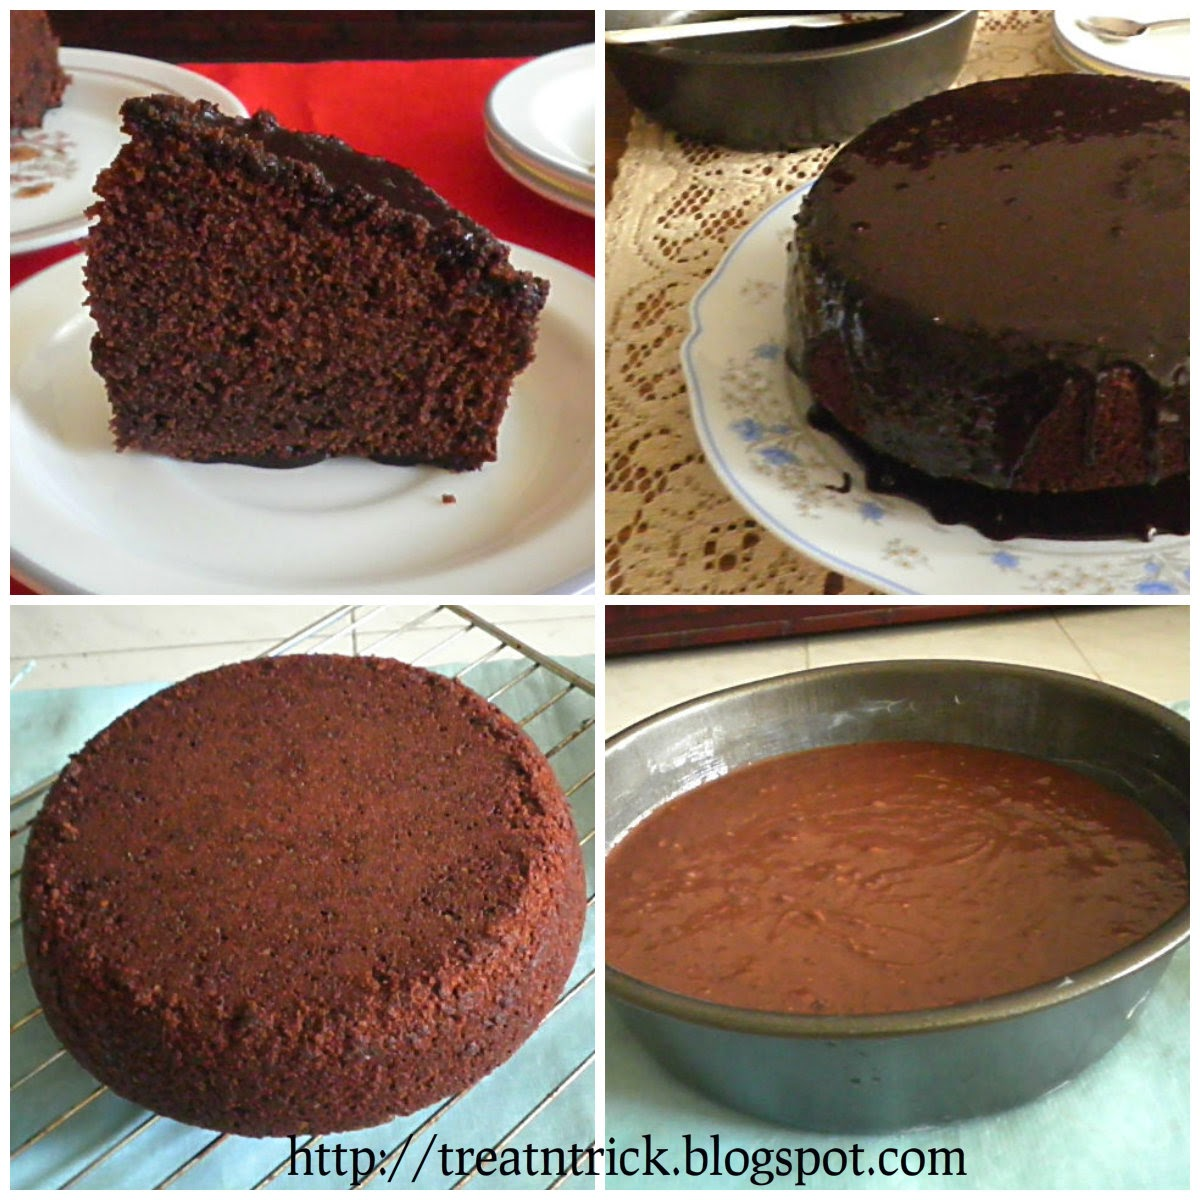 Chocolate Cake w/Chocolate Frosting Recipe @ treatntrick.blogspot.com